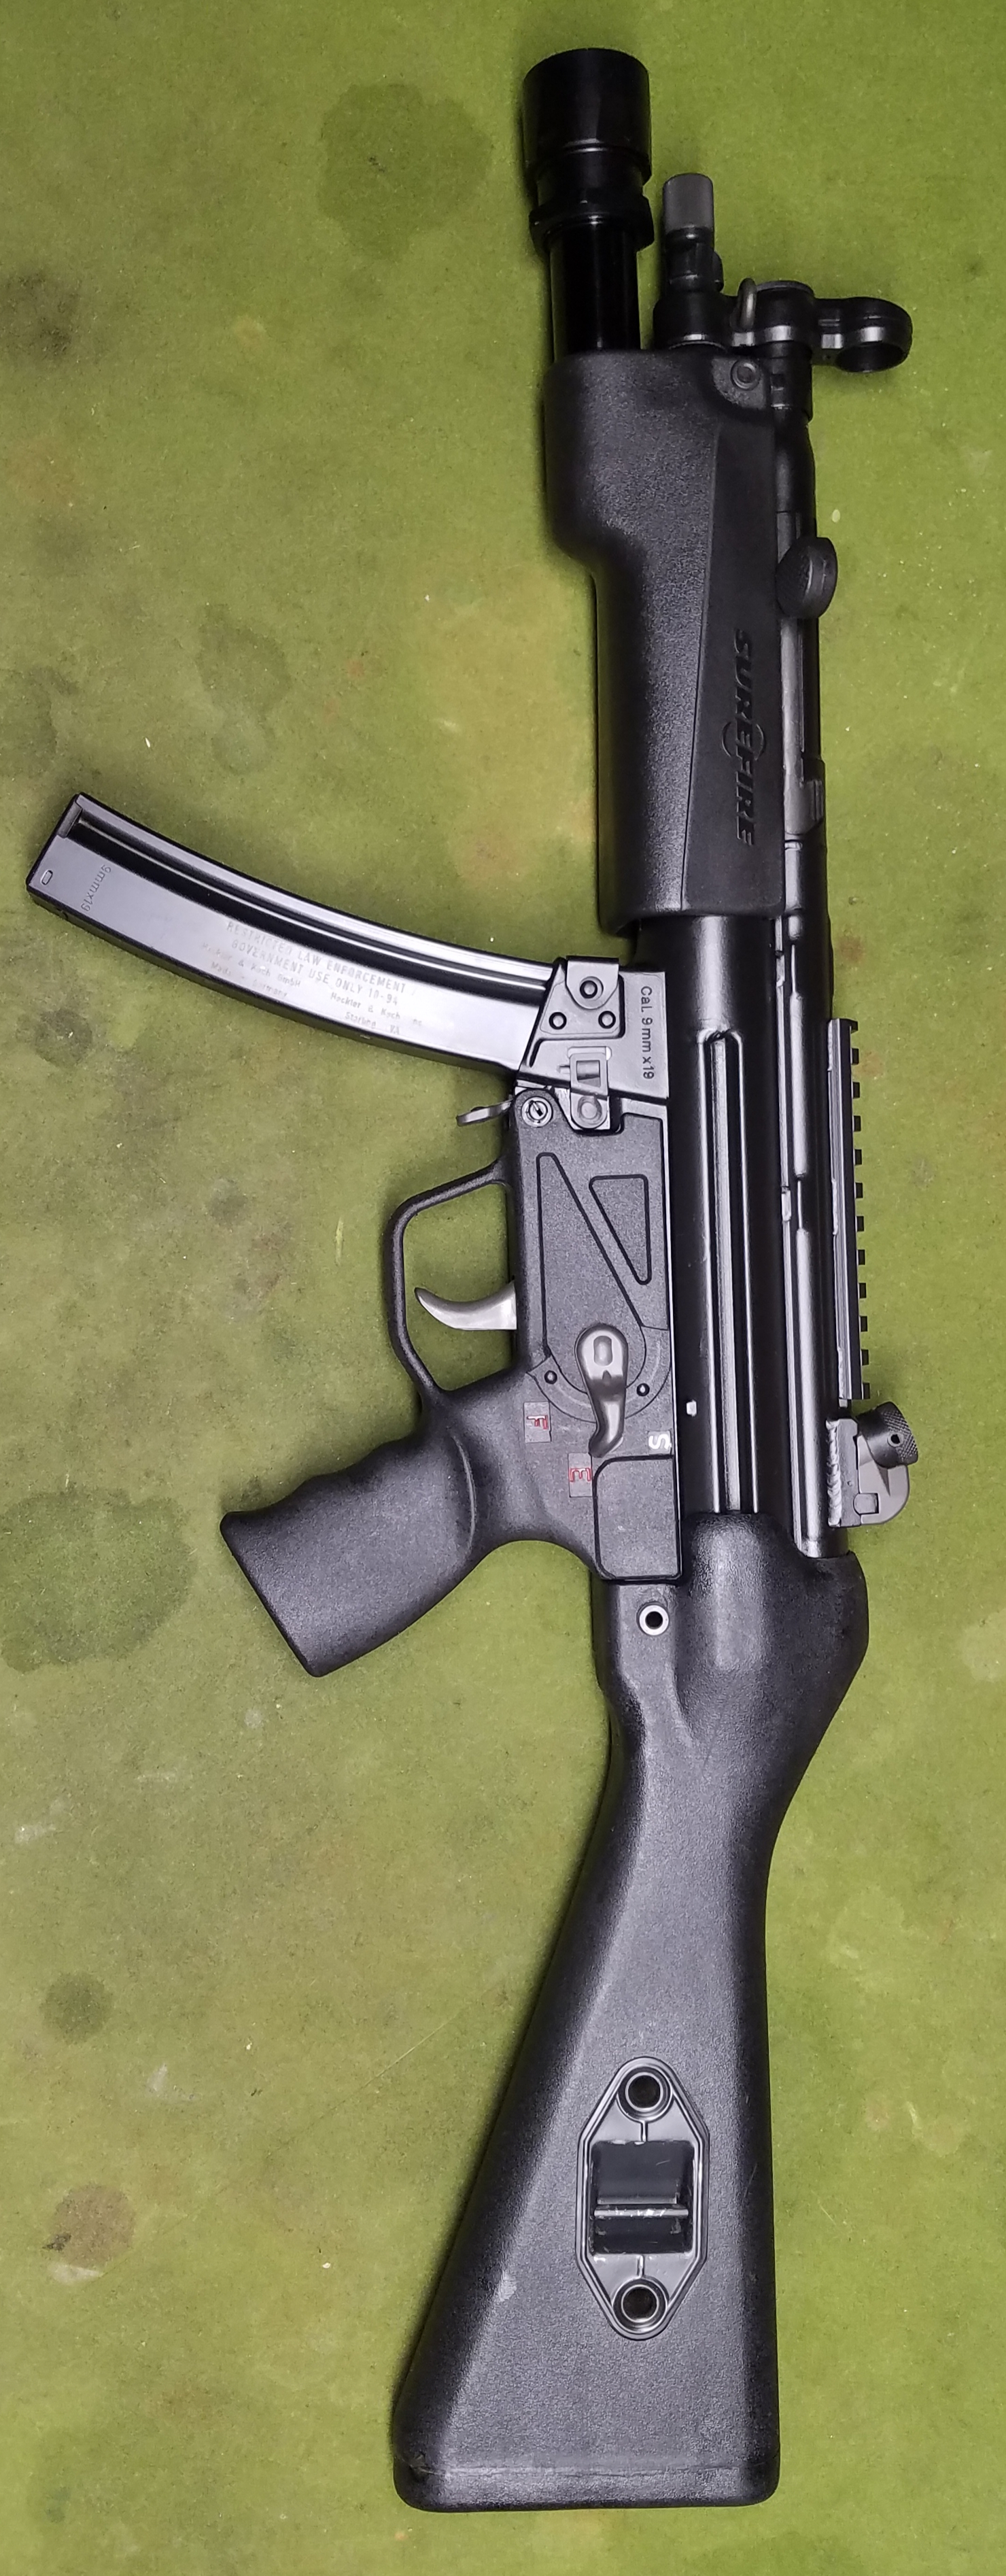 PTR 9CT and HK SEF trigger housing fitment issue-20190216_073112.jpg